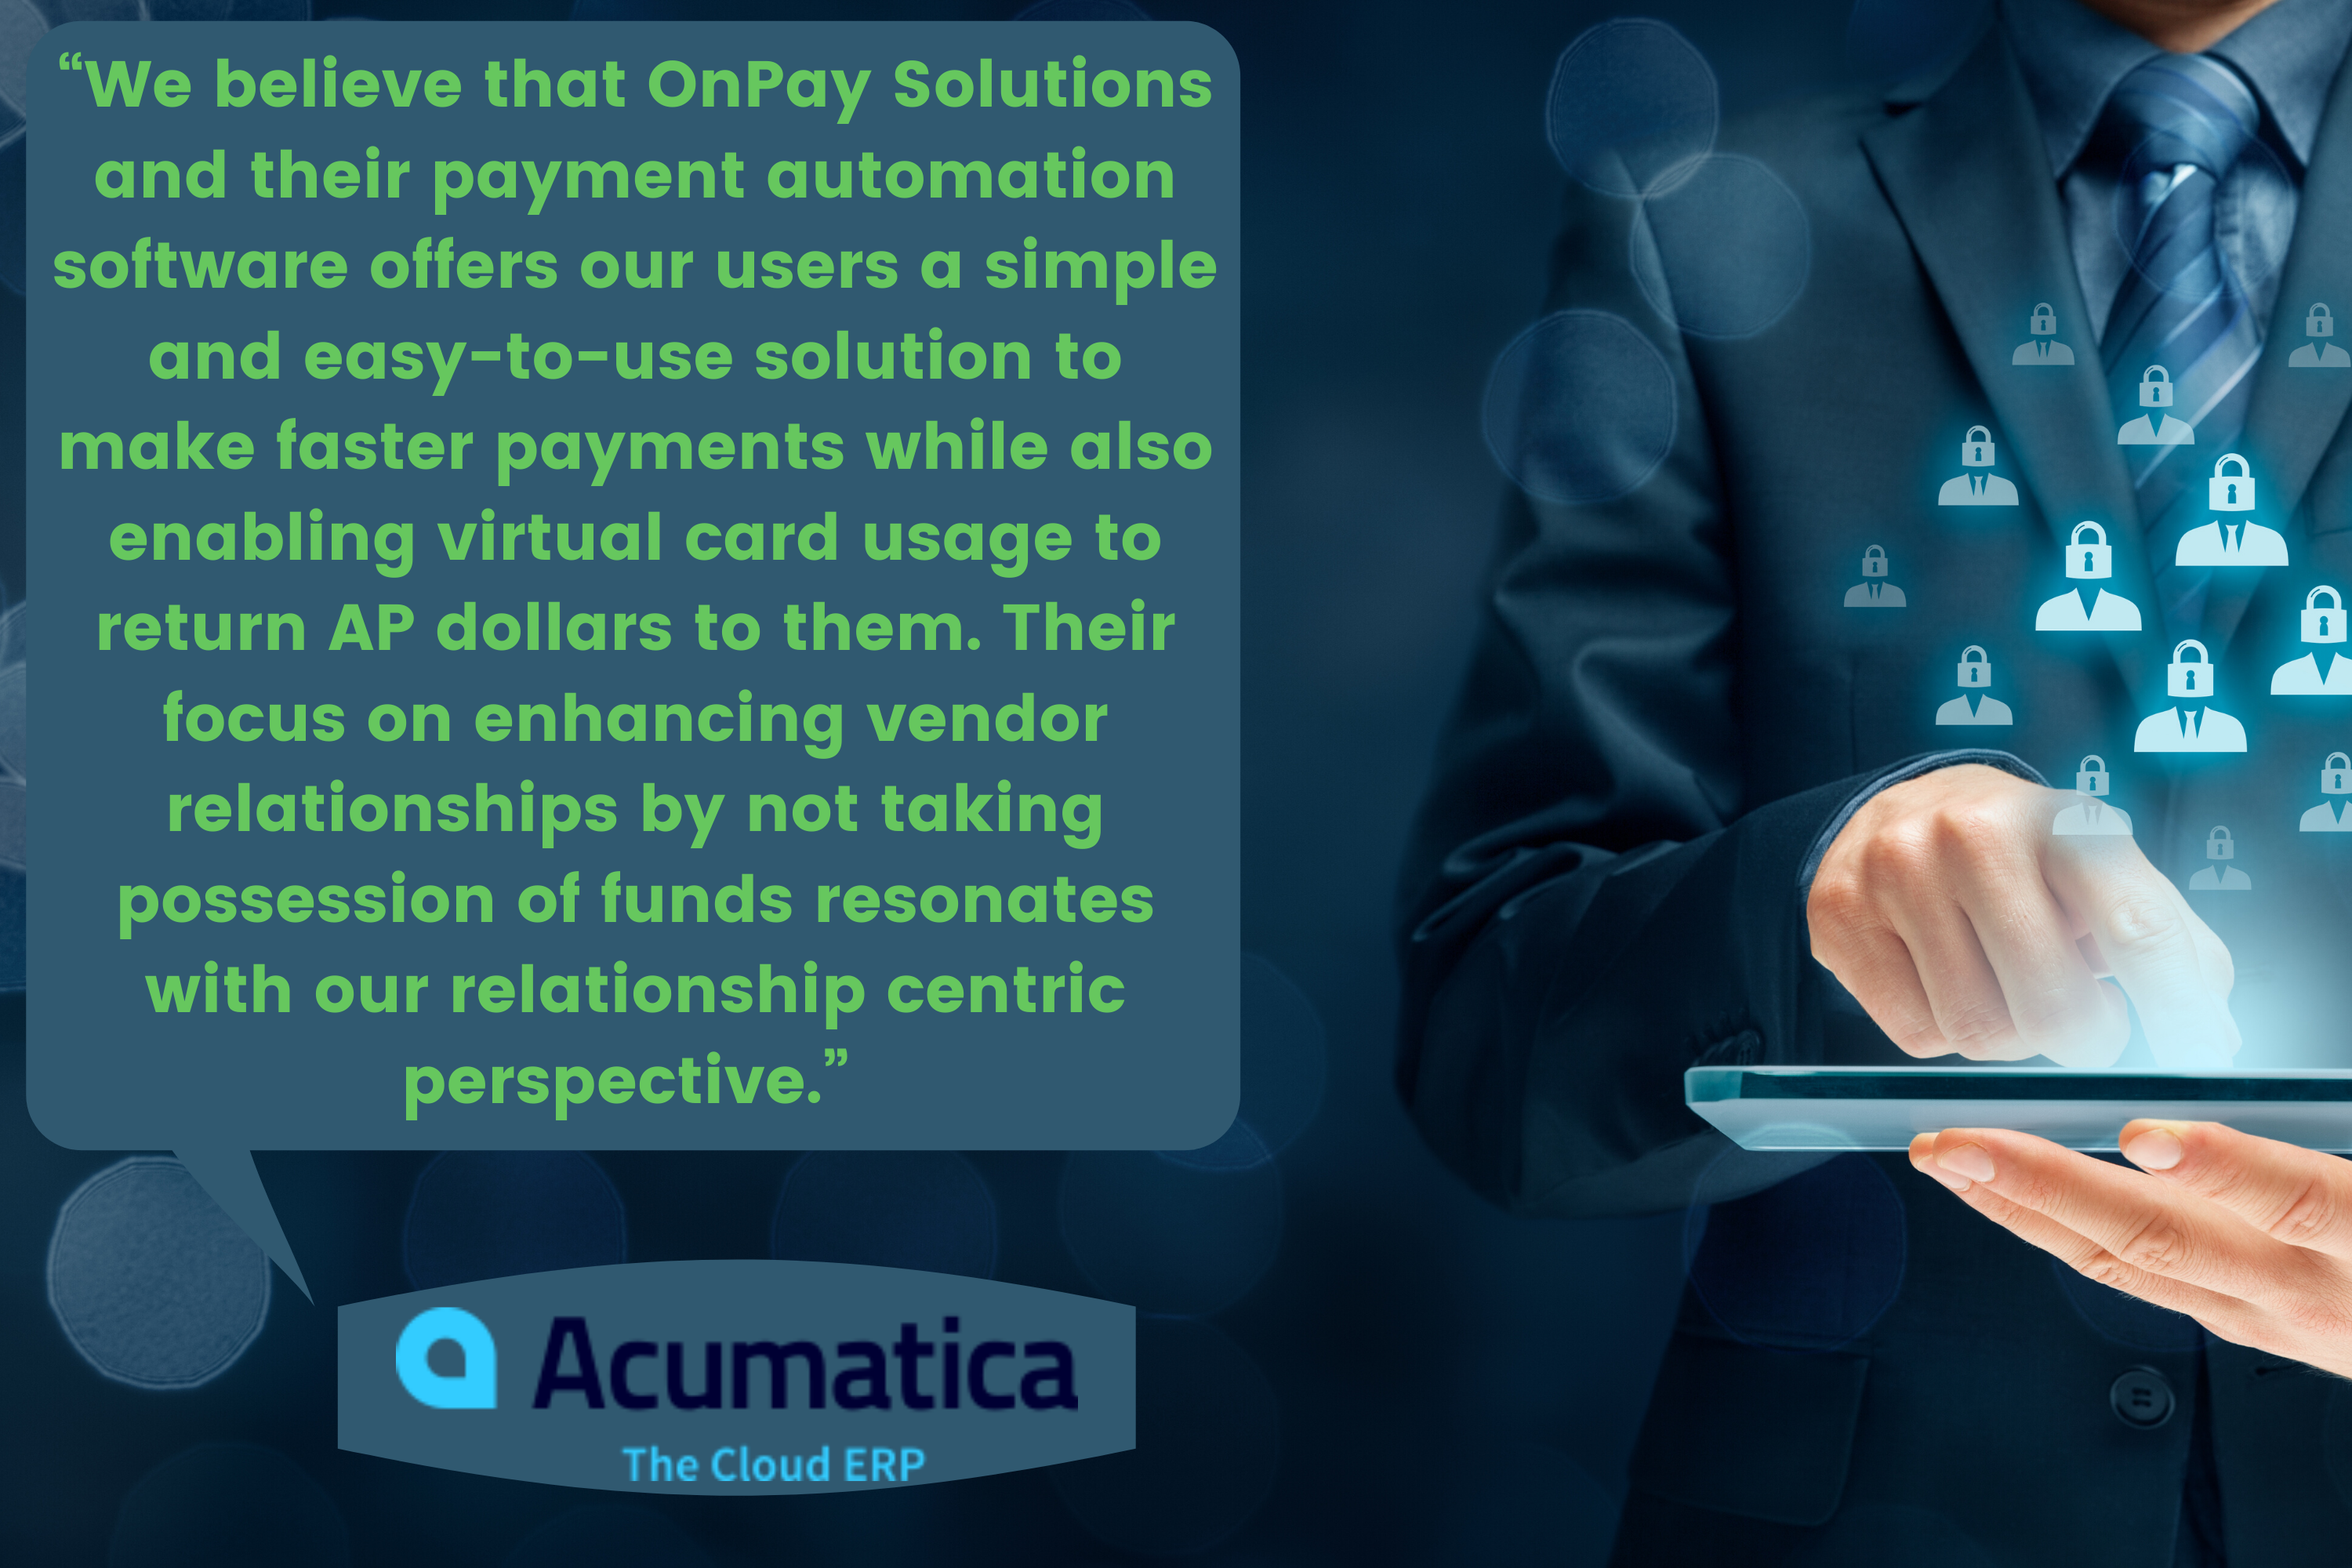 Acumatica ERP AP Integration Testimonial Onpay Solutions Image